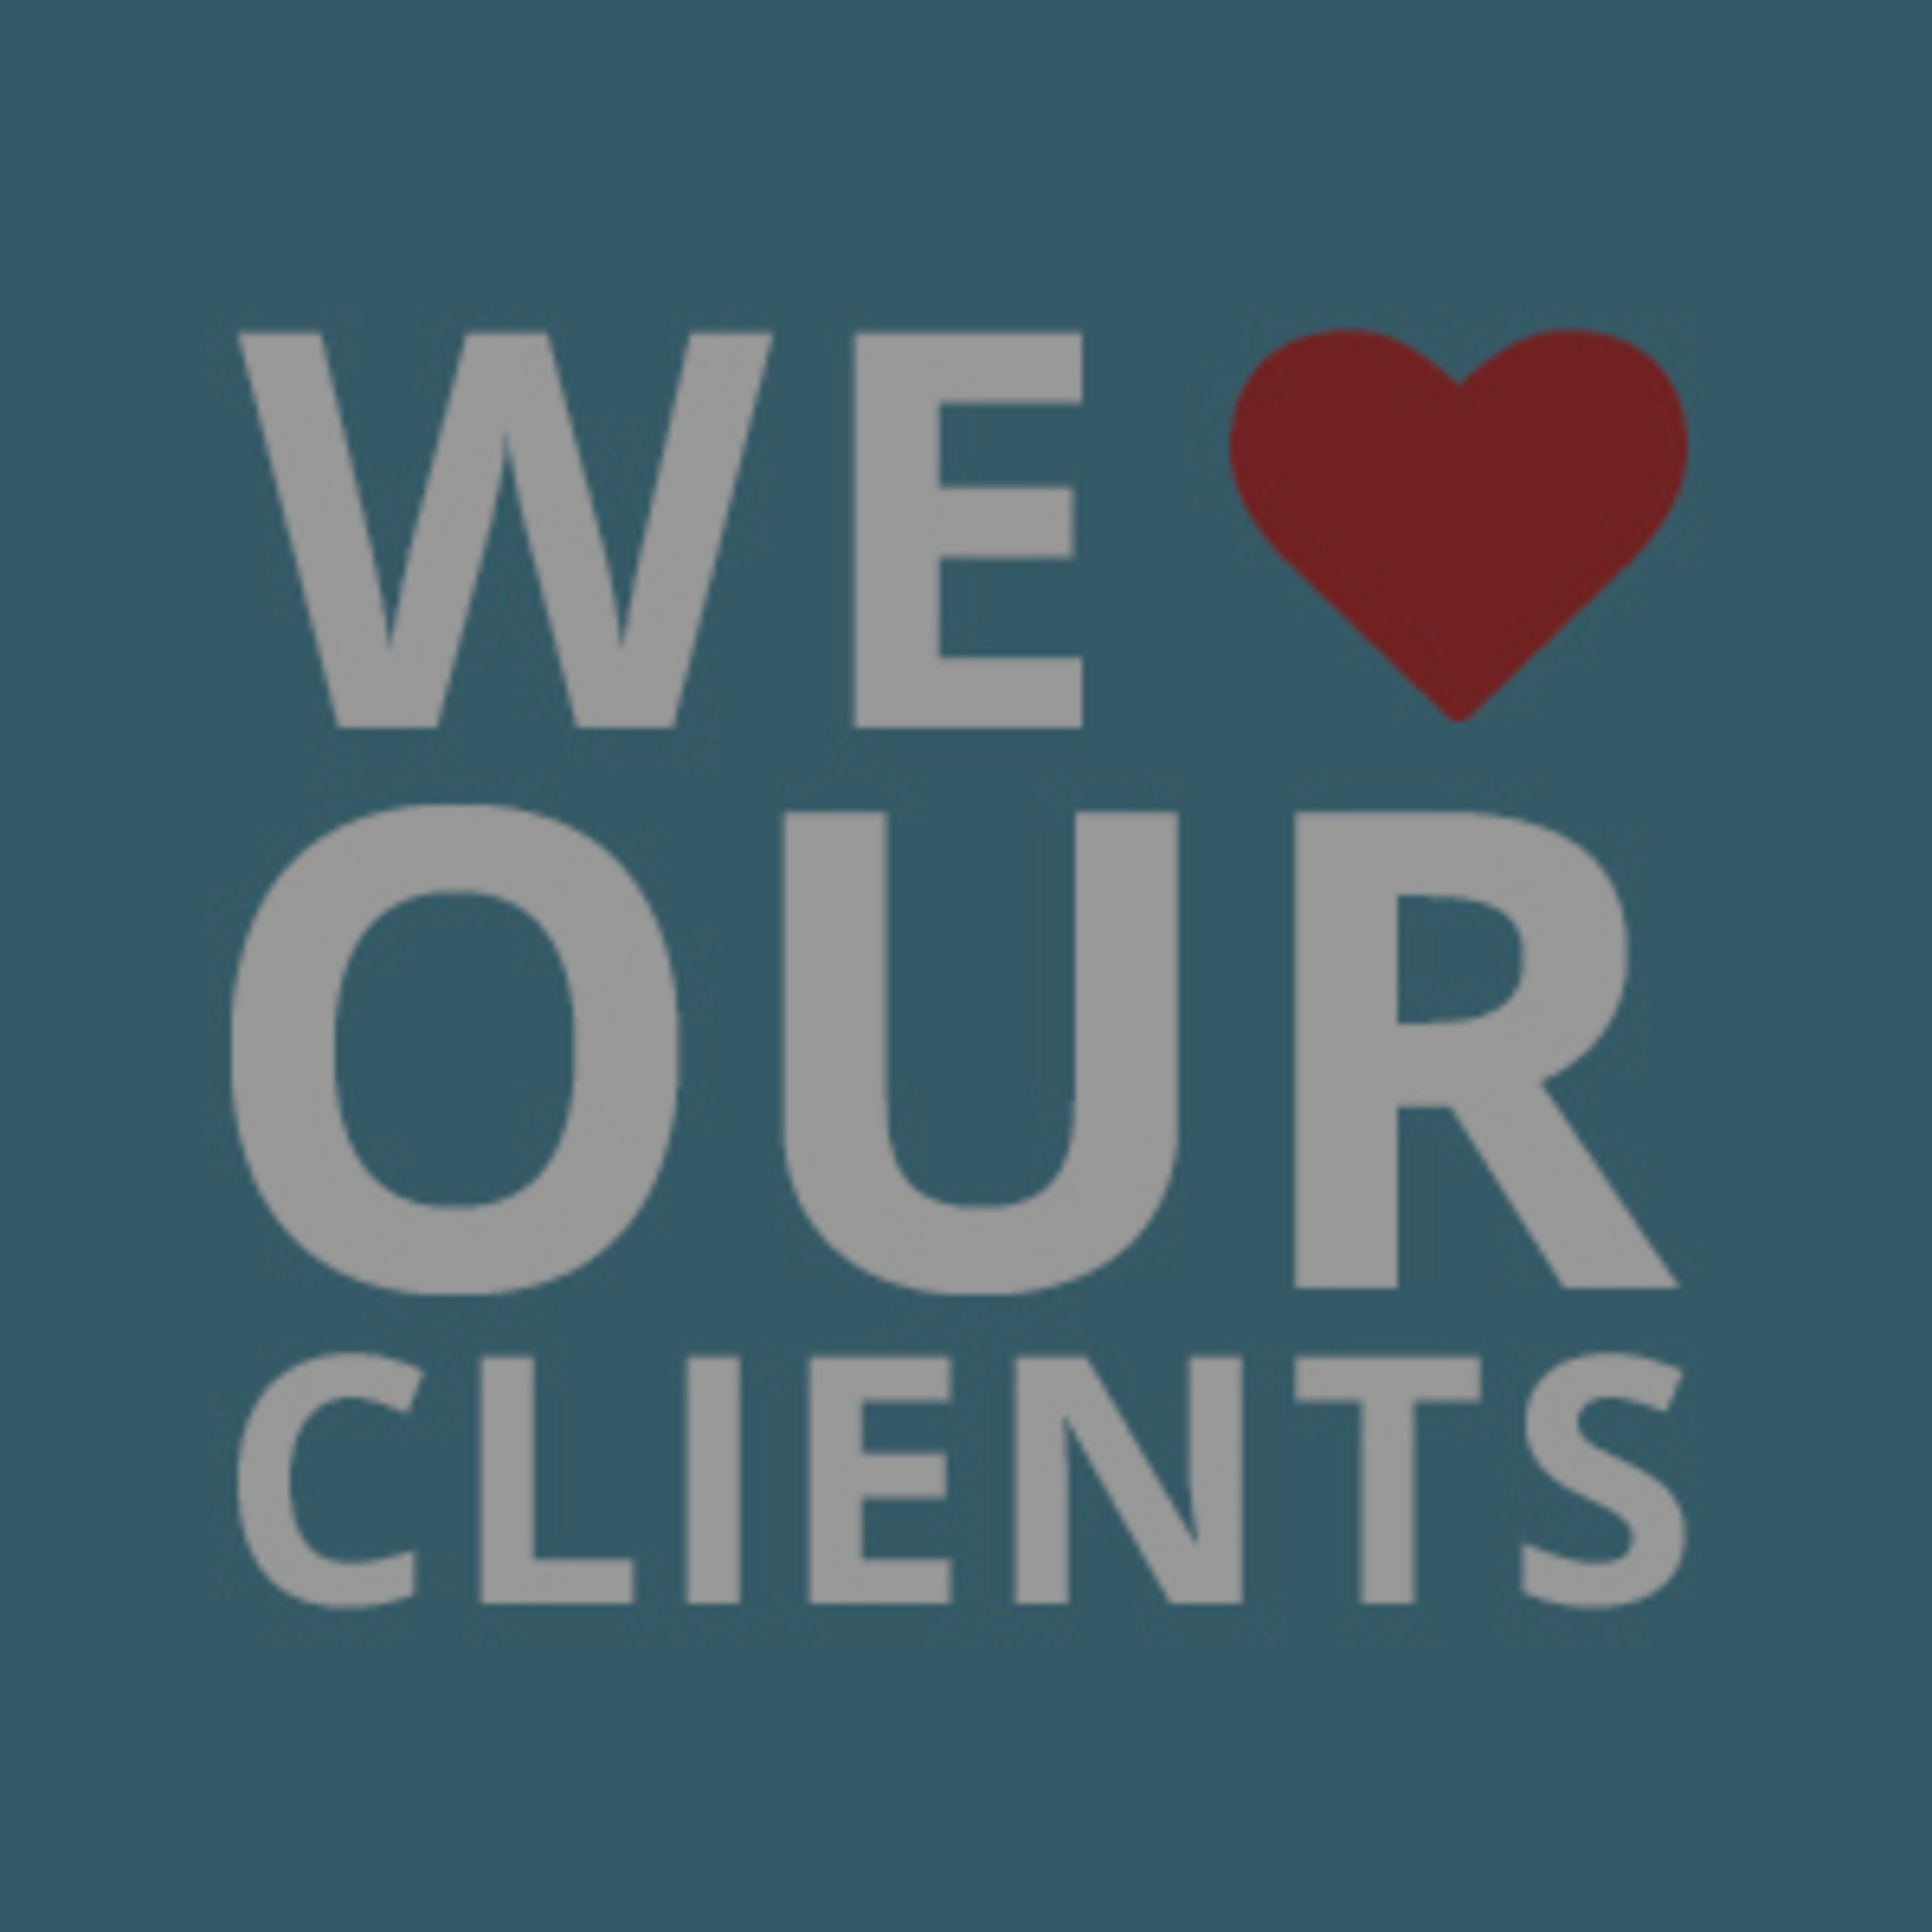 The Tammy Mrotek Team Loves Our Clients and Your Referrals!